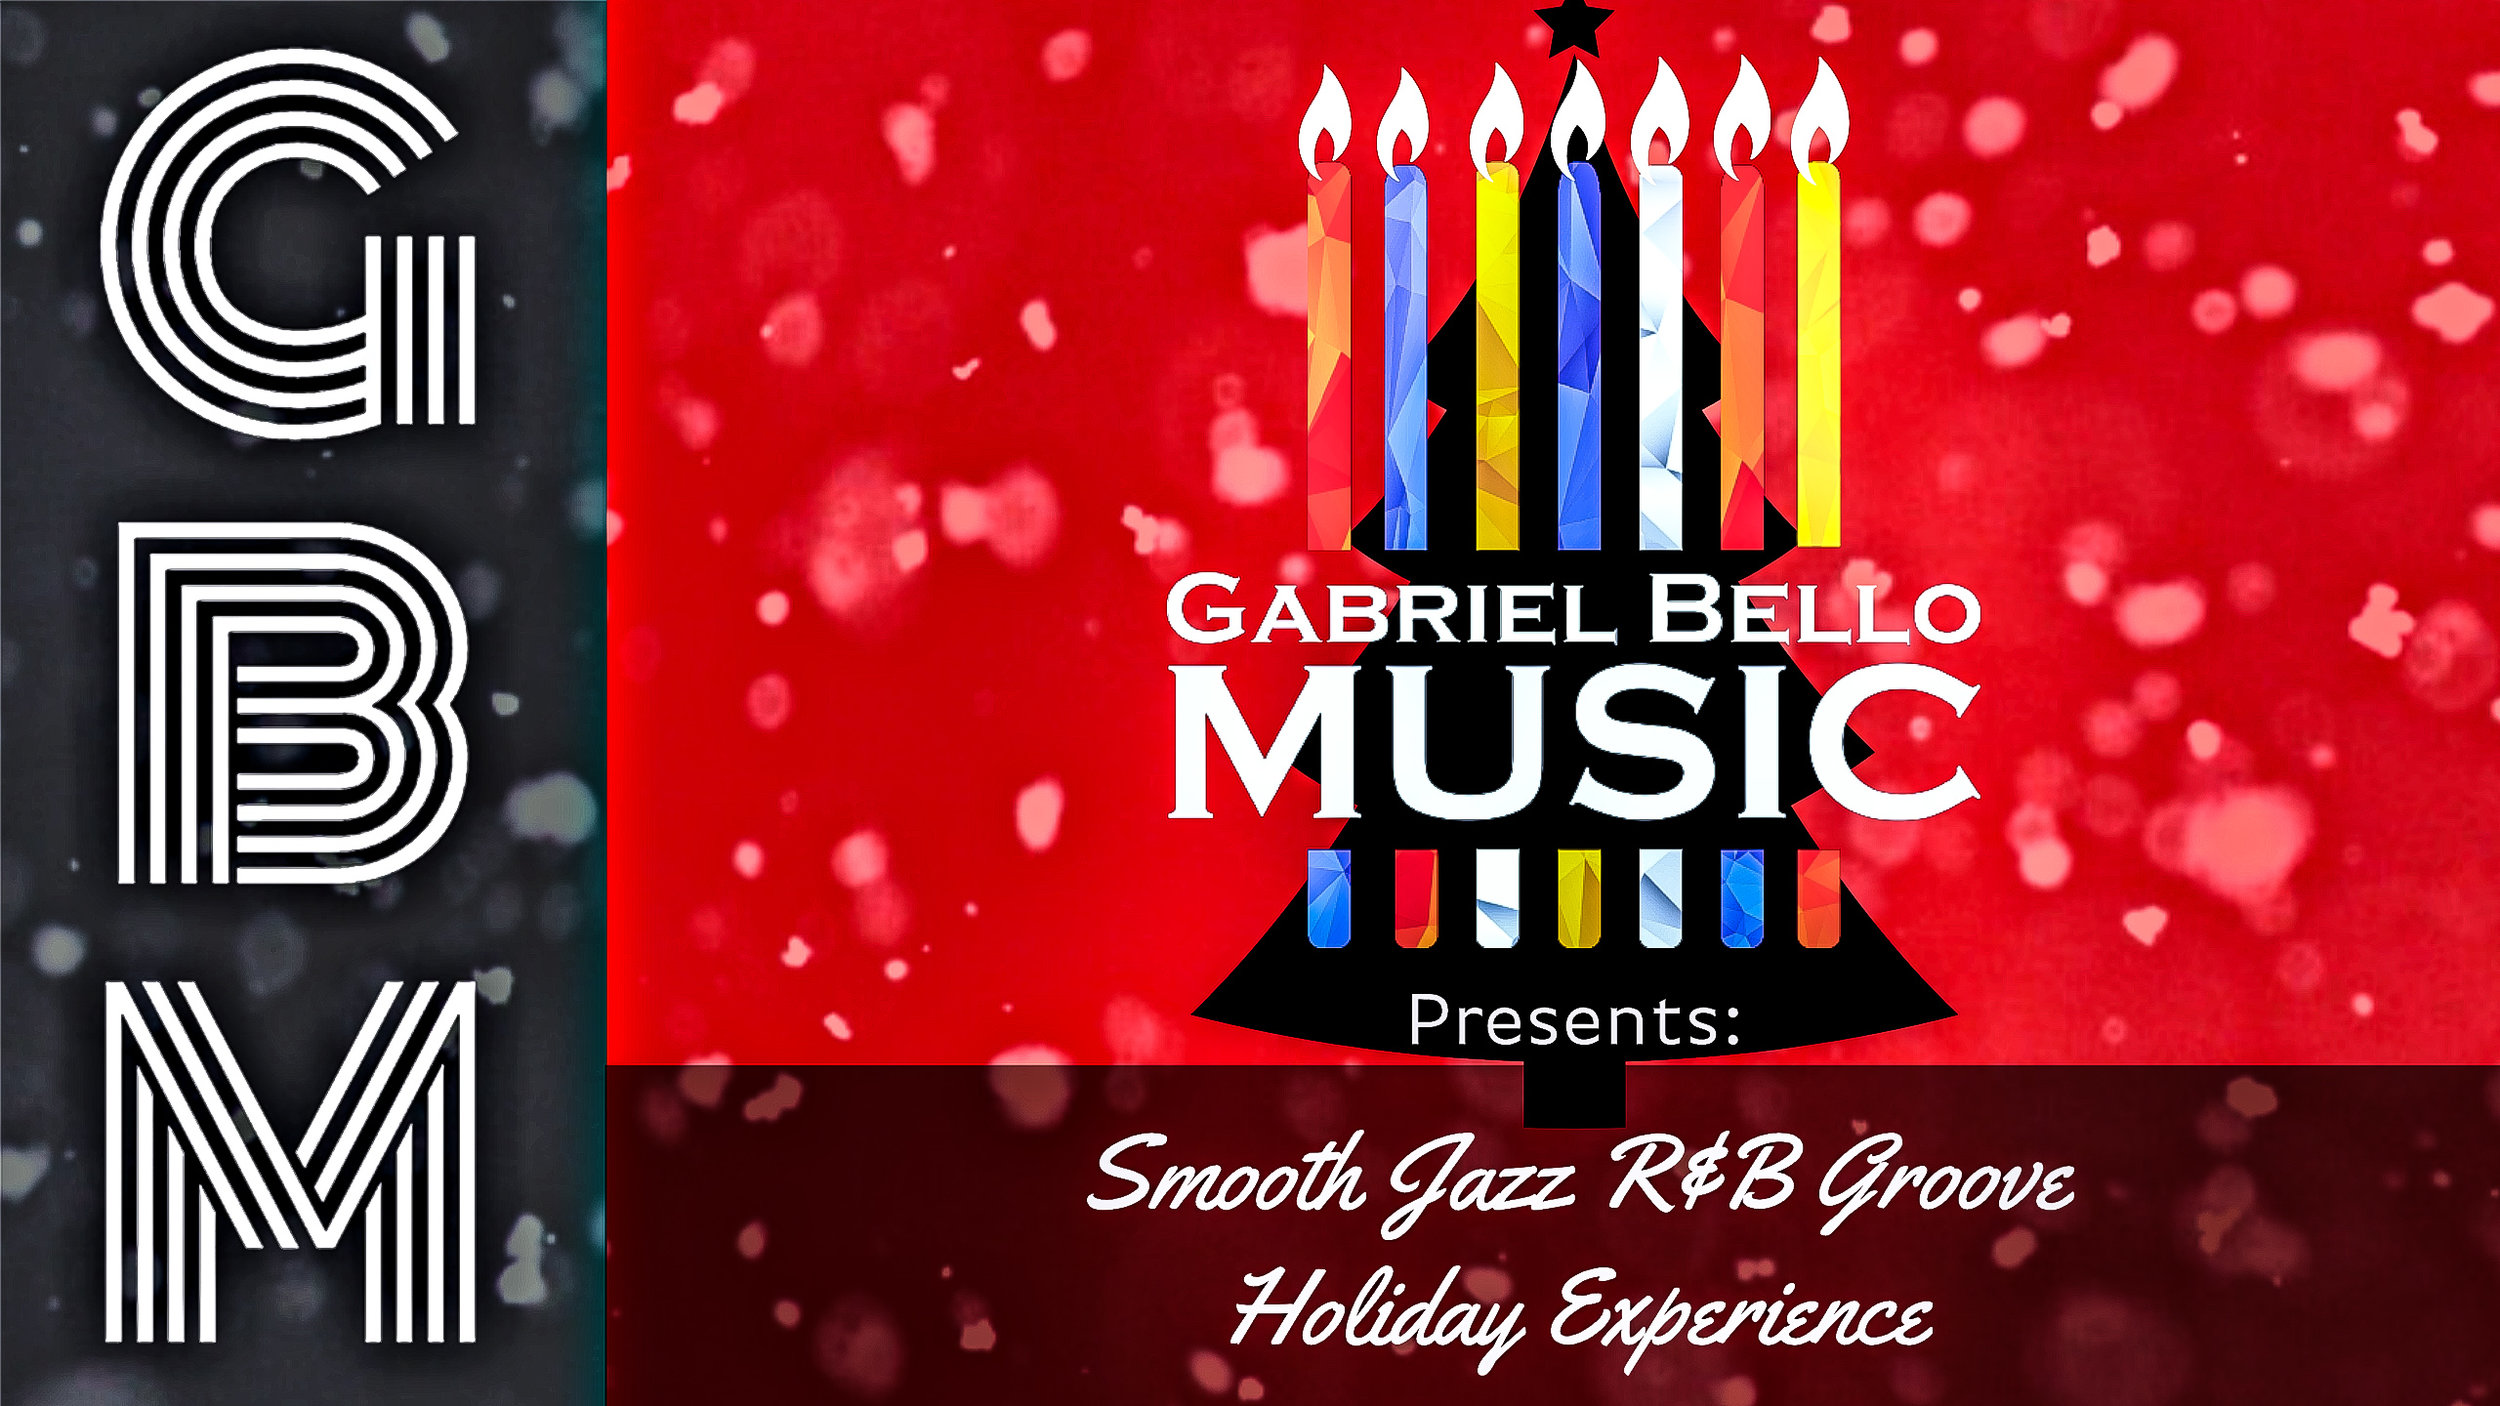 Now Booking for the Holidays, a brand new show! - The Smooth Jazz R&B Groove Holiday Experience.Contact mail@gabrielbellomusic.com